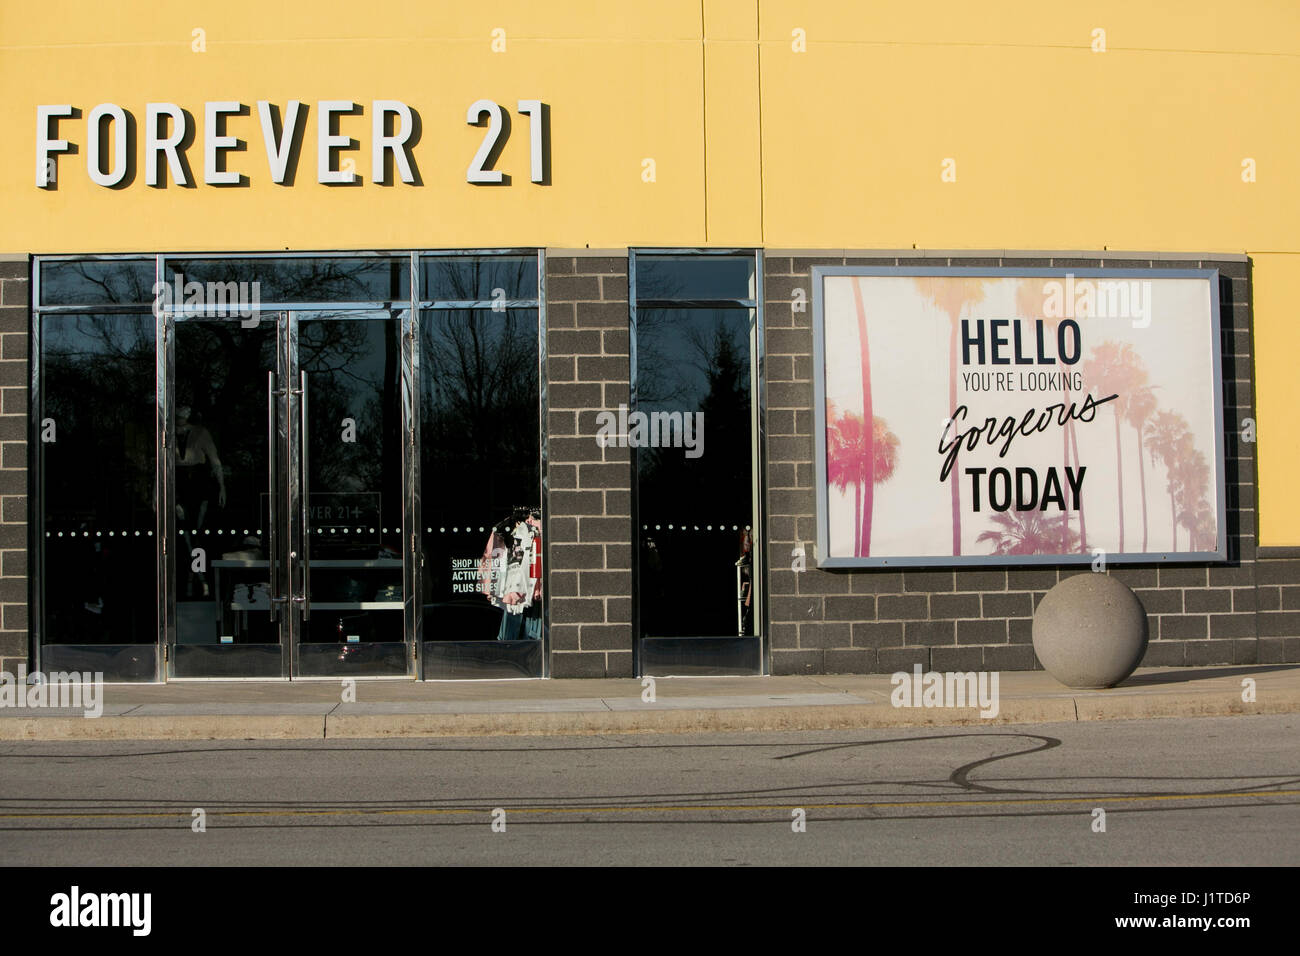 A logo sign outside of a Forever 21 retail store in Burlington, ON, Canada on April 14, 2017. - Stock Image